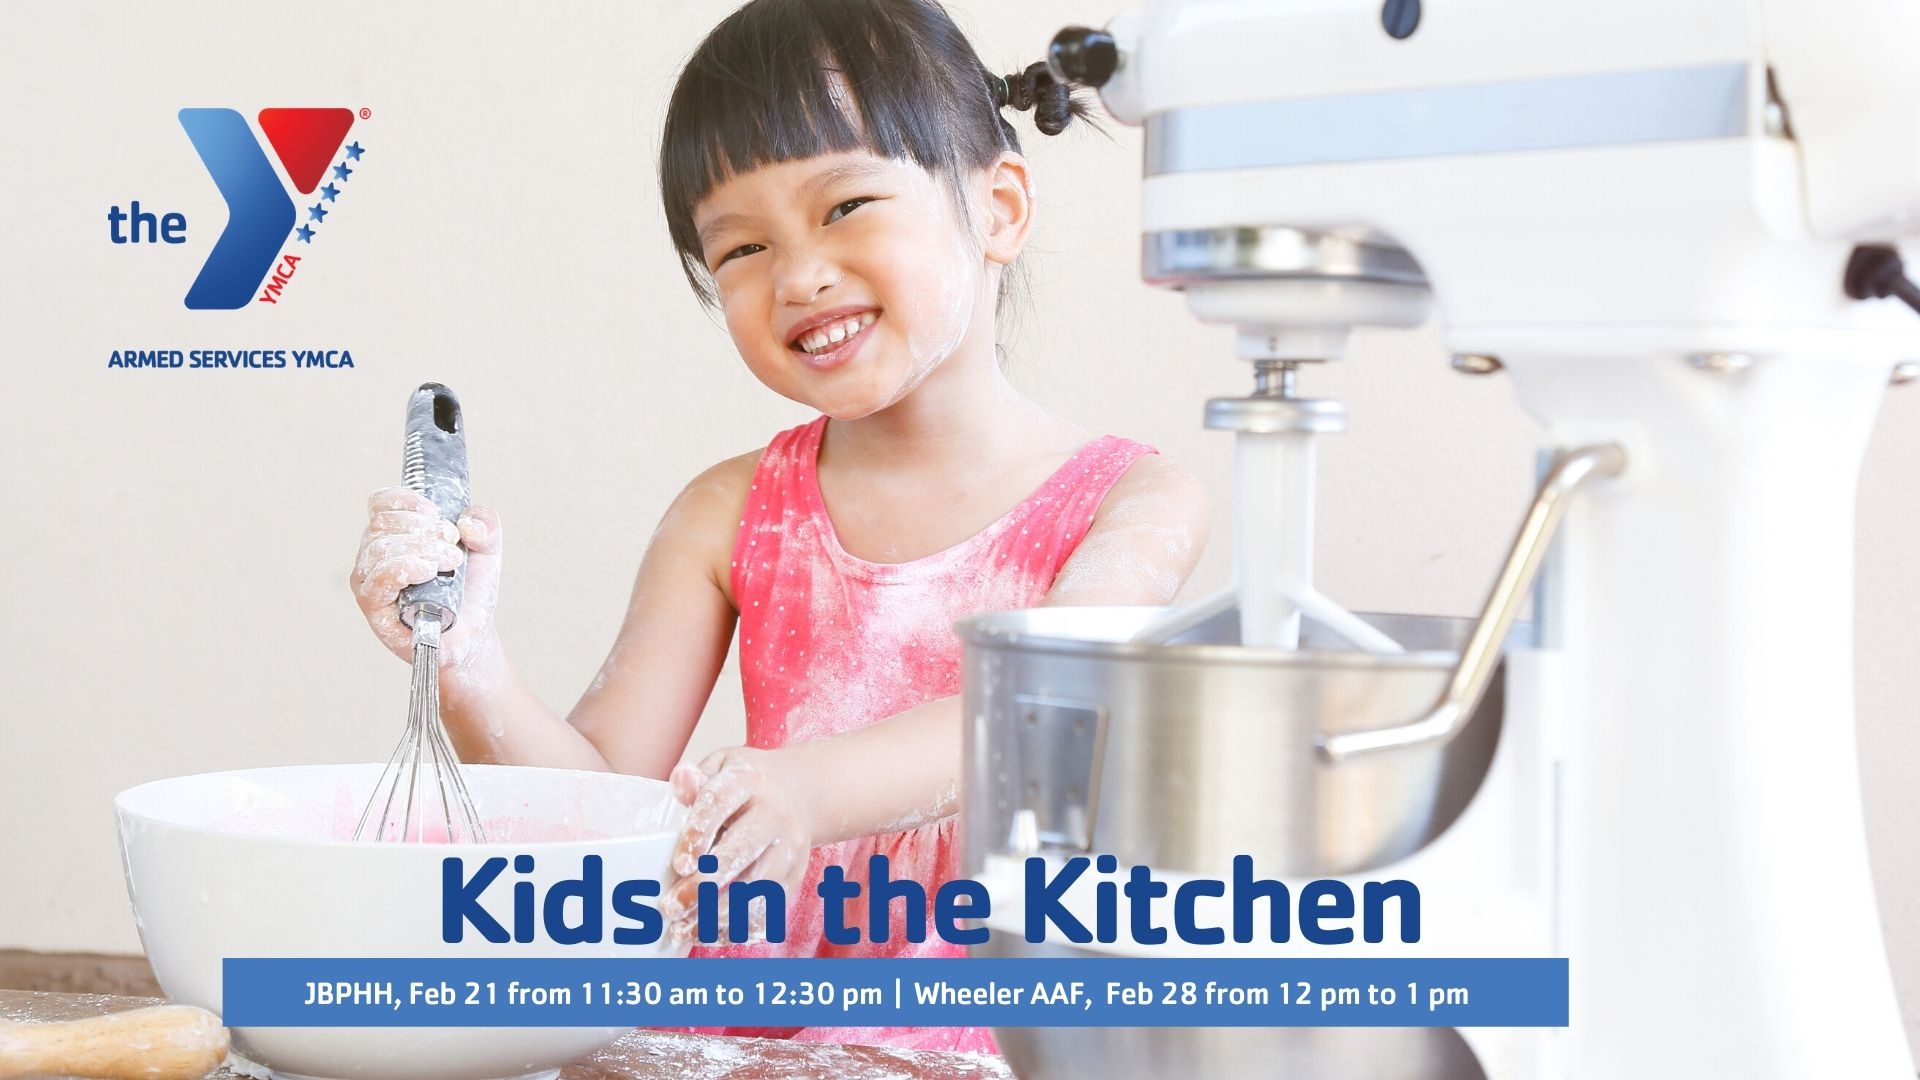 Kids in the Kitchen Event Feb